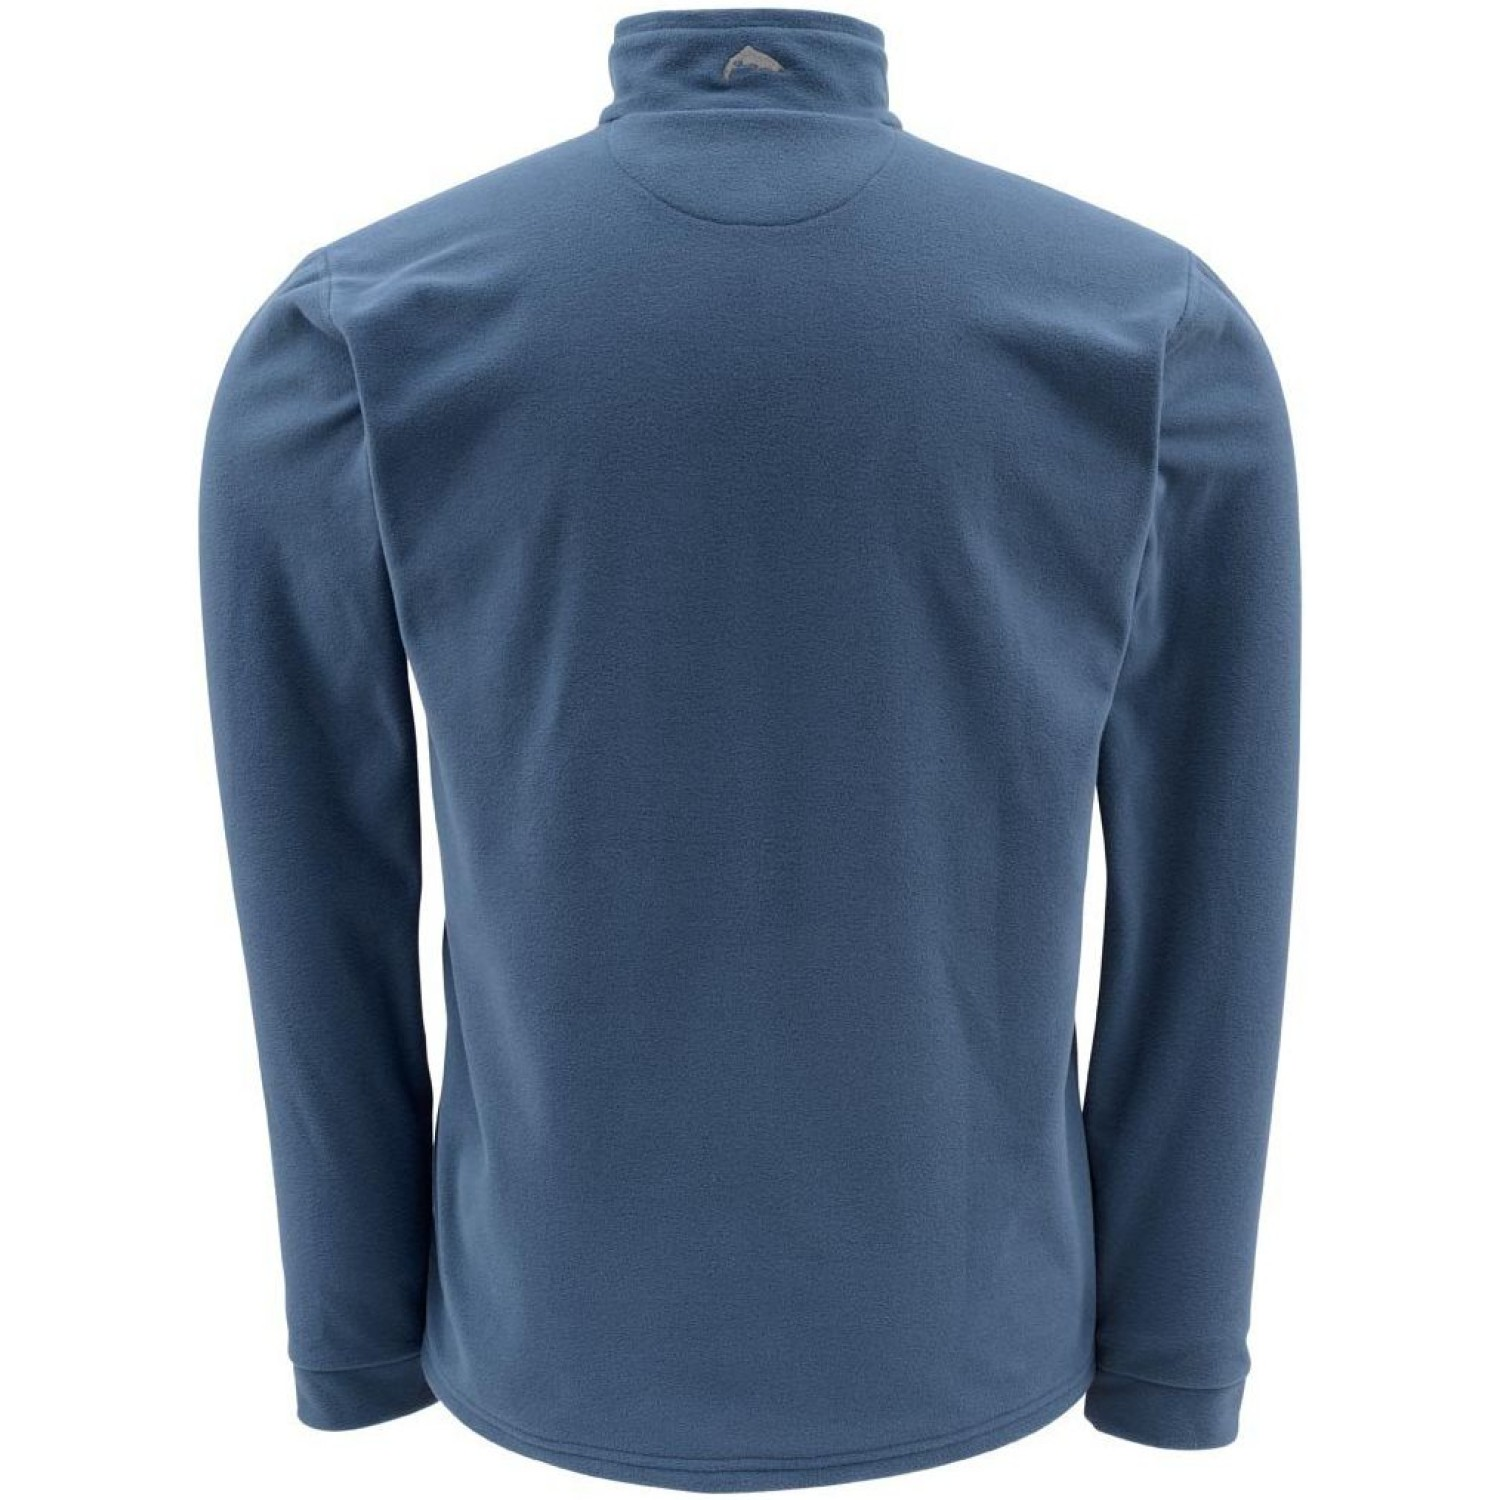 Simms Waderwick Thermal Top Navy